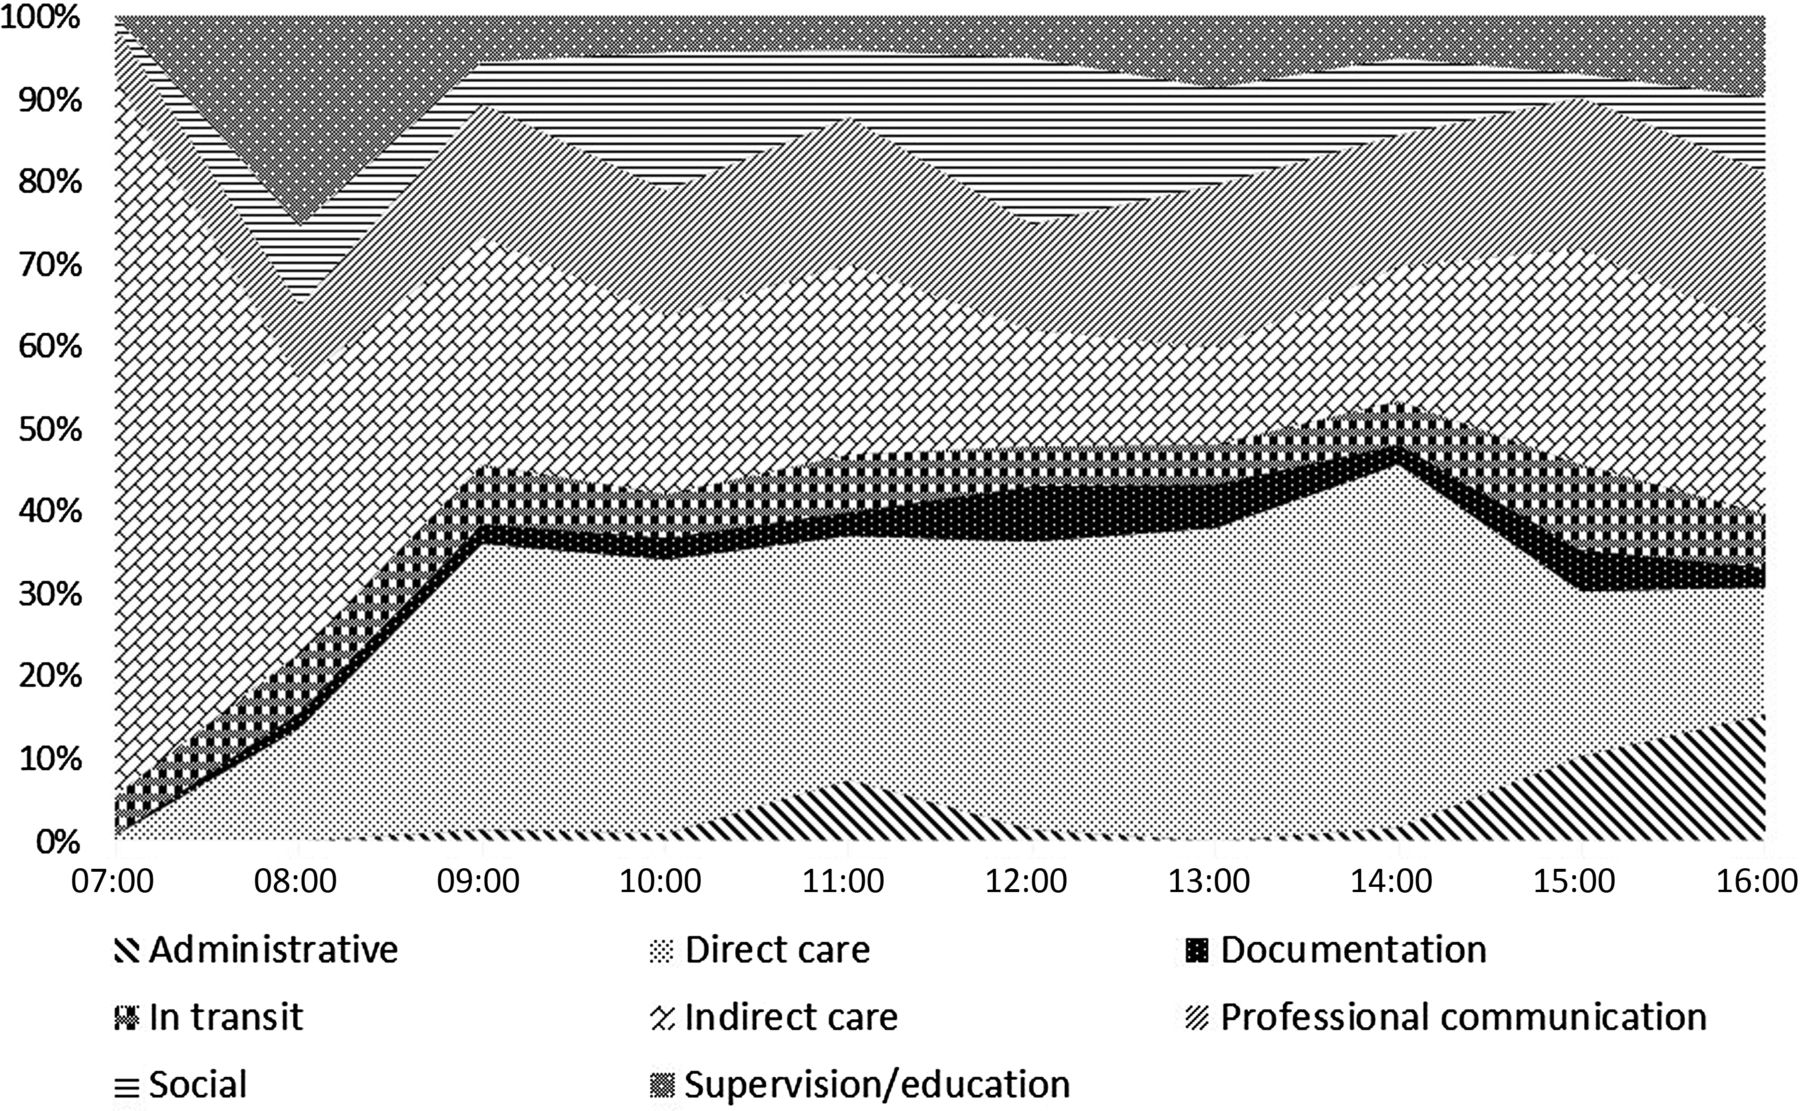 A work observation study of nuclear medicine technologists